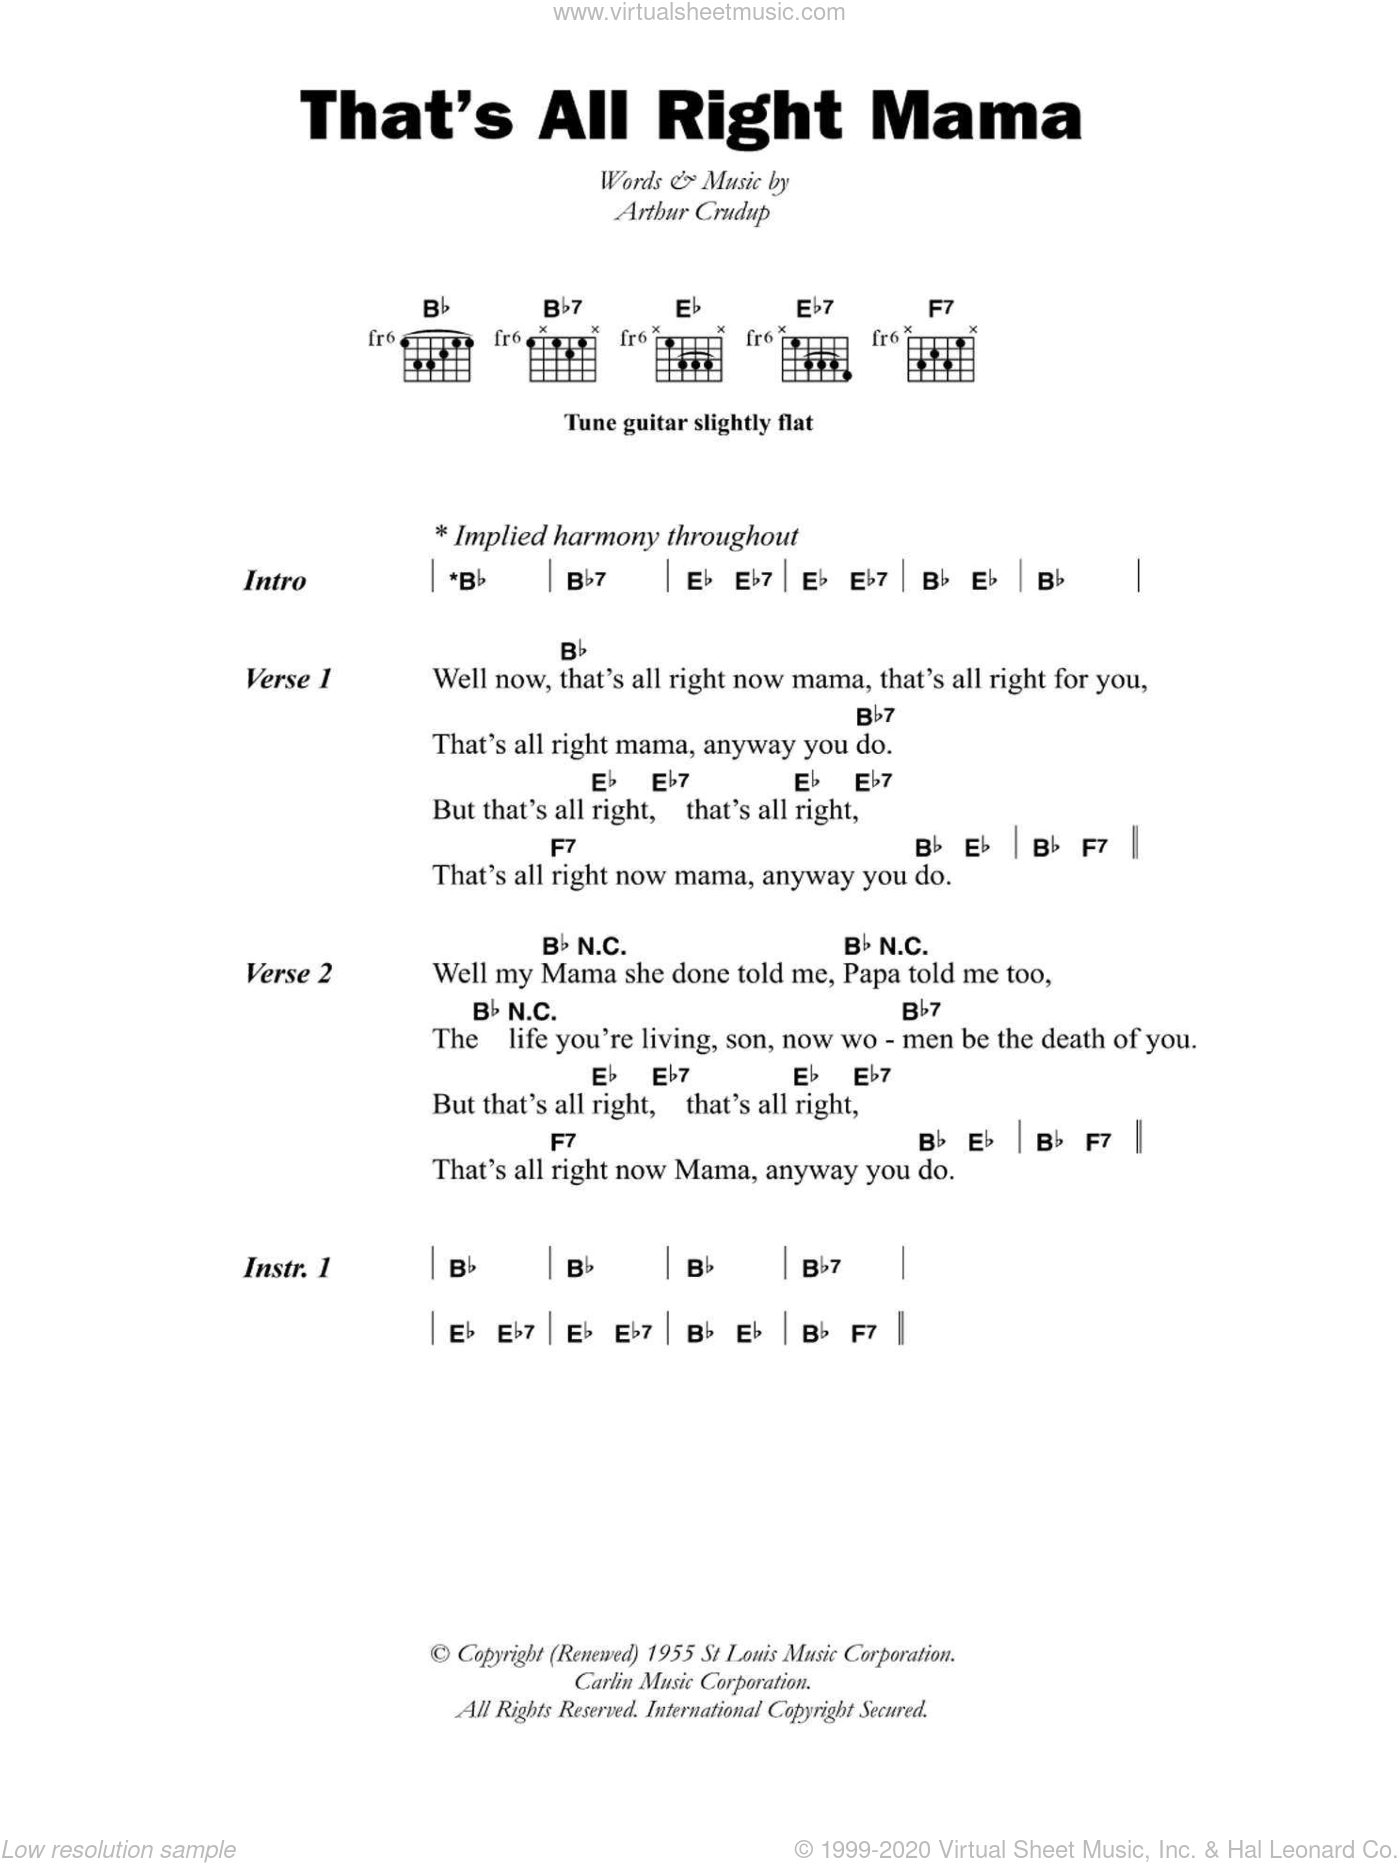 Crudup Thats All Right Mama Sheet Music For Guitar Chords